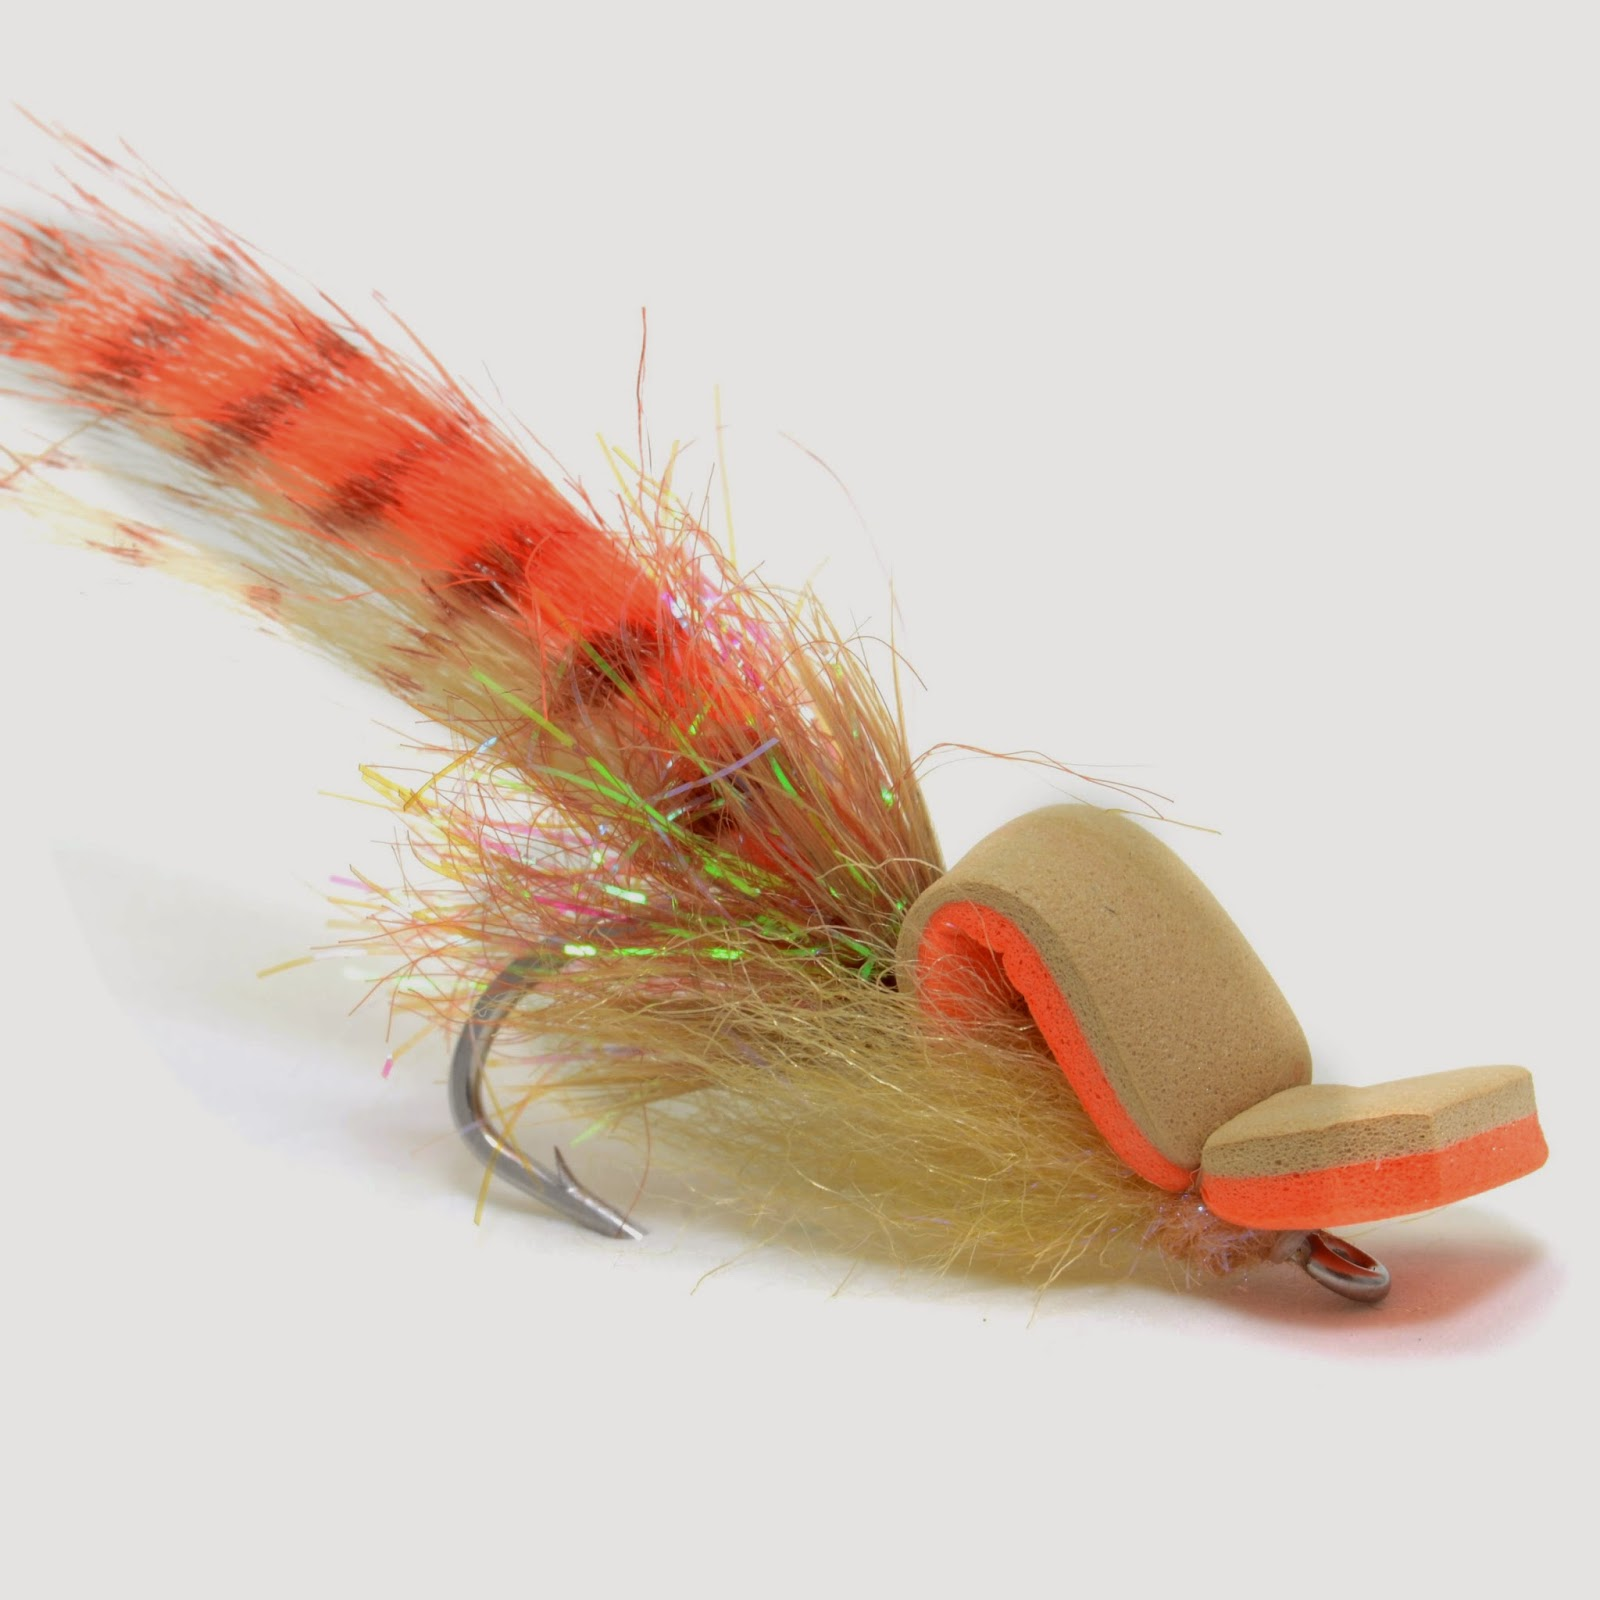 Saltwater gurgler fly fish food fly tying and fly fishing for Saltwater fly fishing